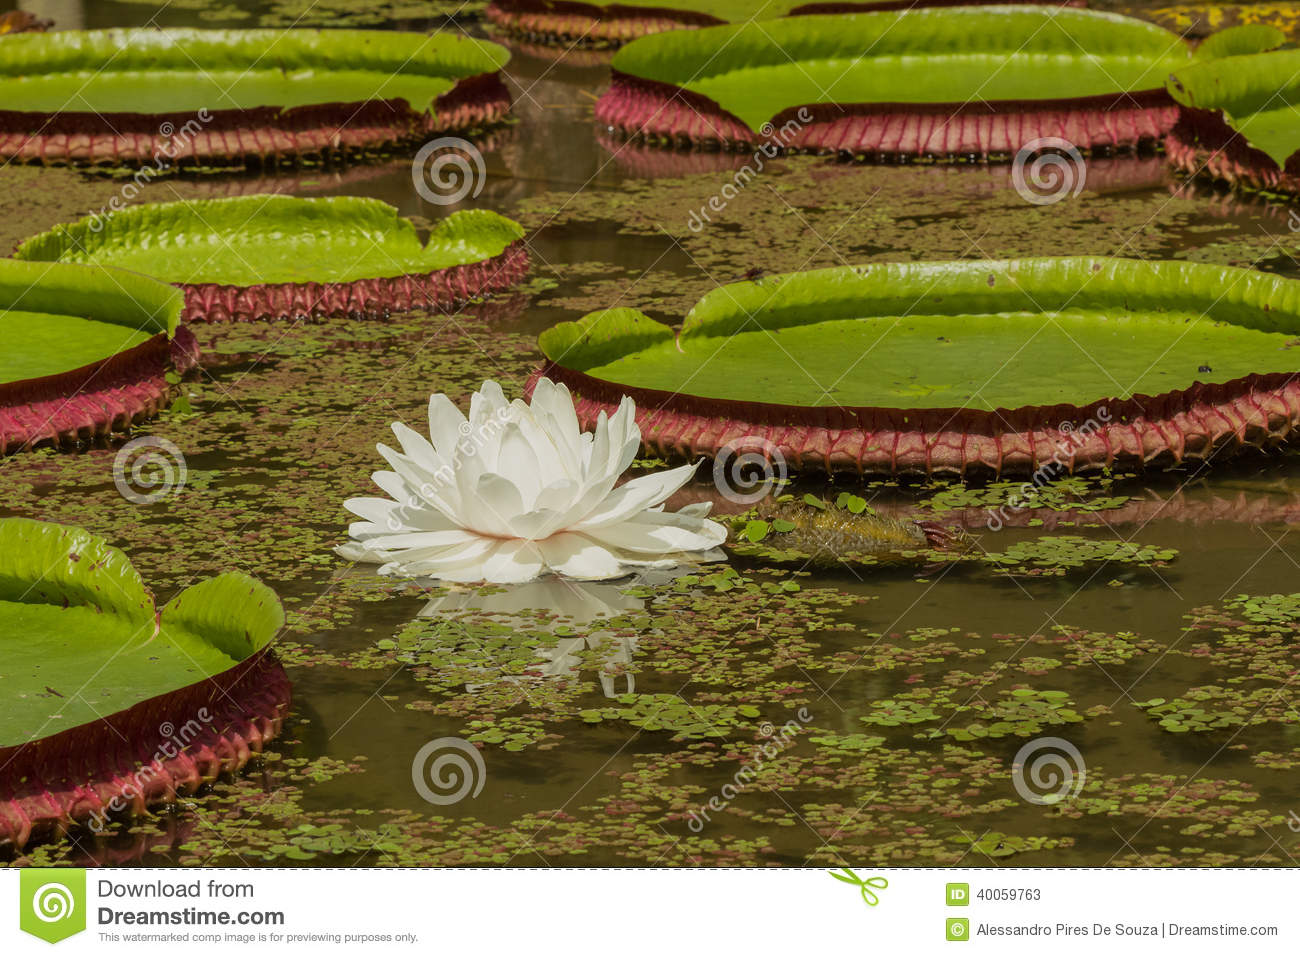 White Lotus Flower In A Pond Stock Image - Image of floral, pattern ...